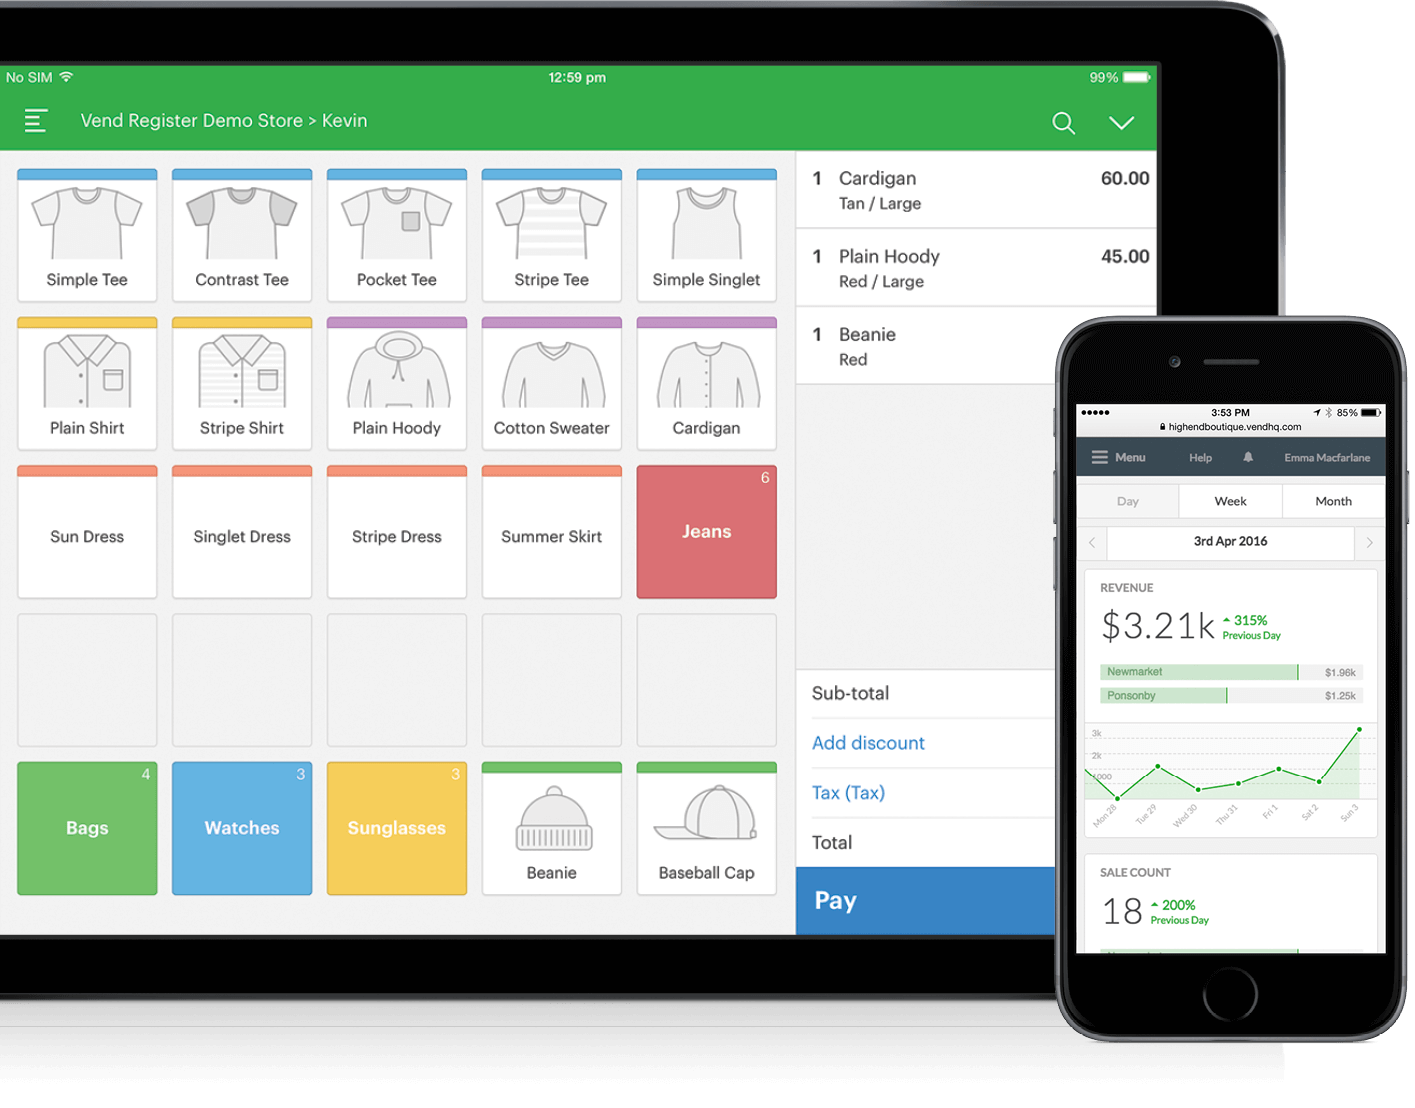 iPad point of sale software from Vend